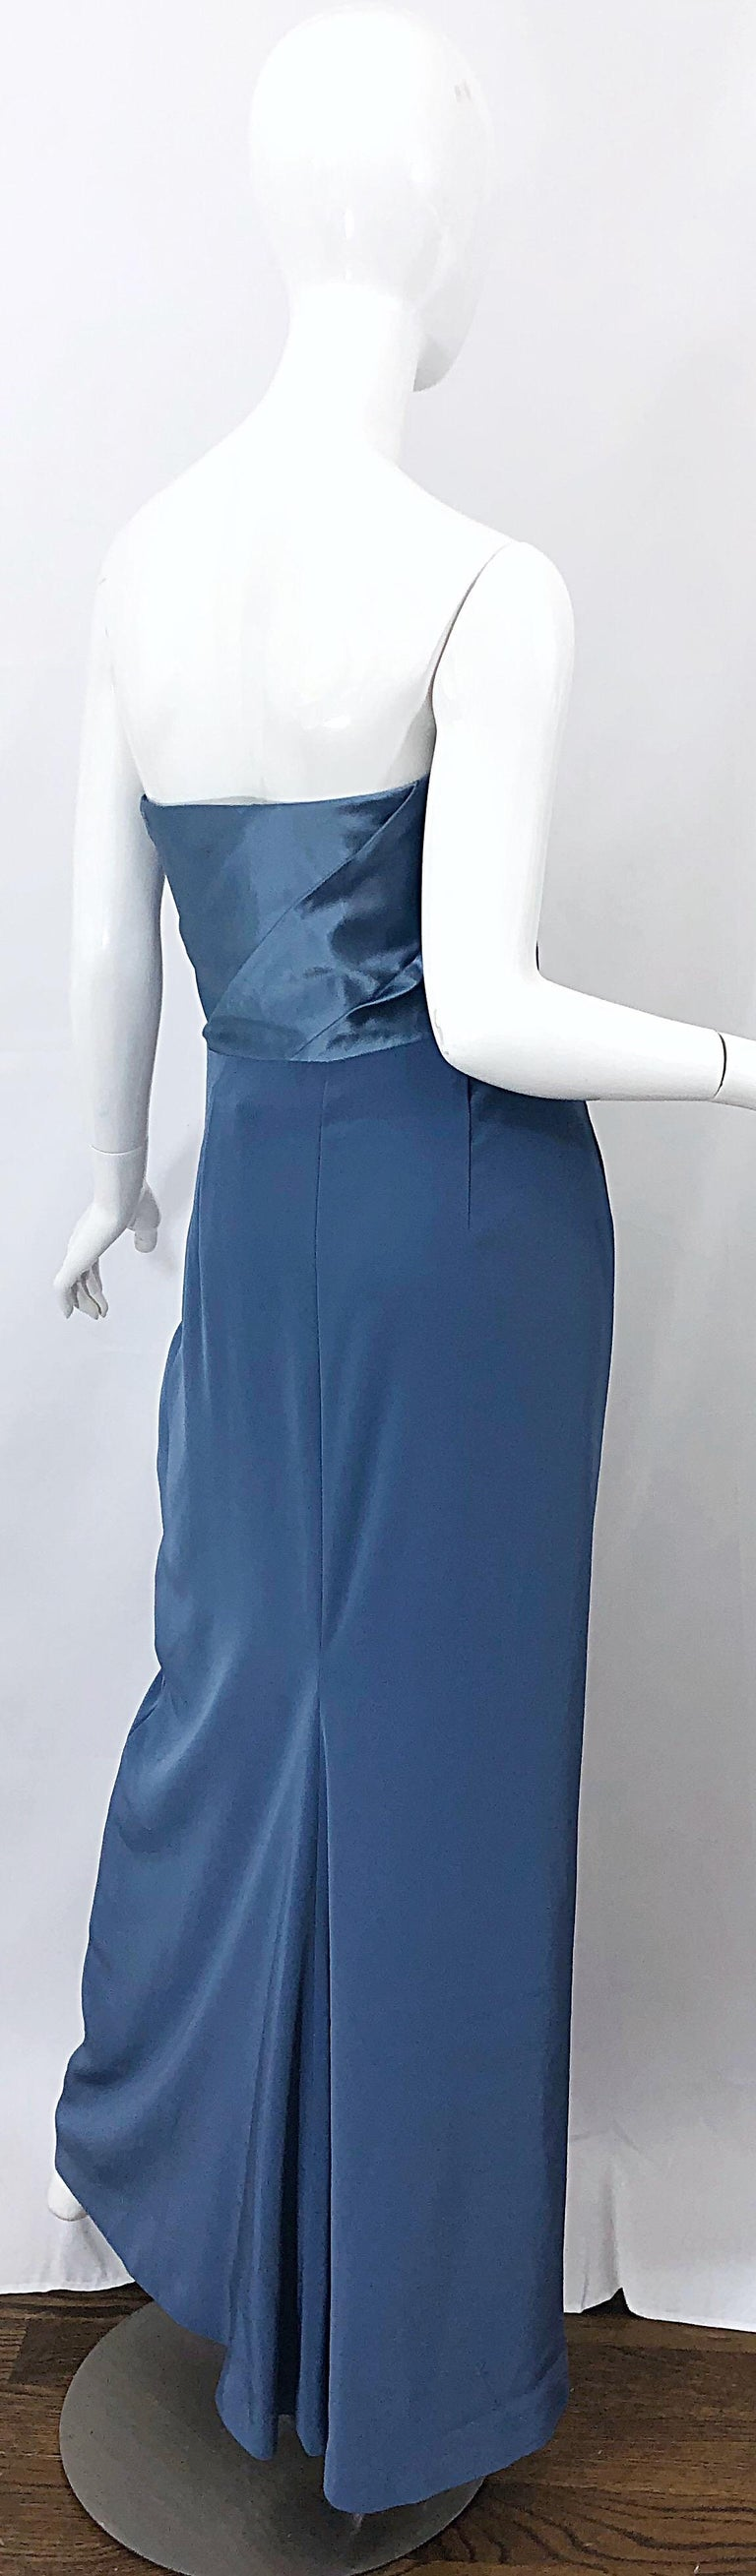 Vintage Bob Mackie Size 12 80s Blue Silk Strapless 1980s Evening Gown Dress For Sale 7